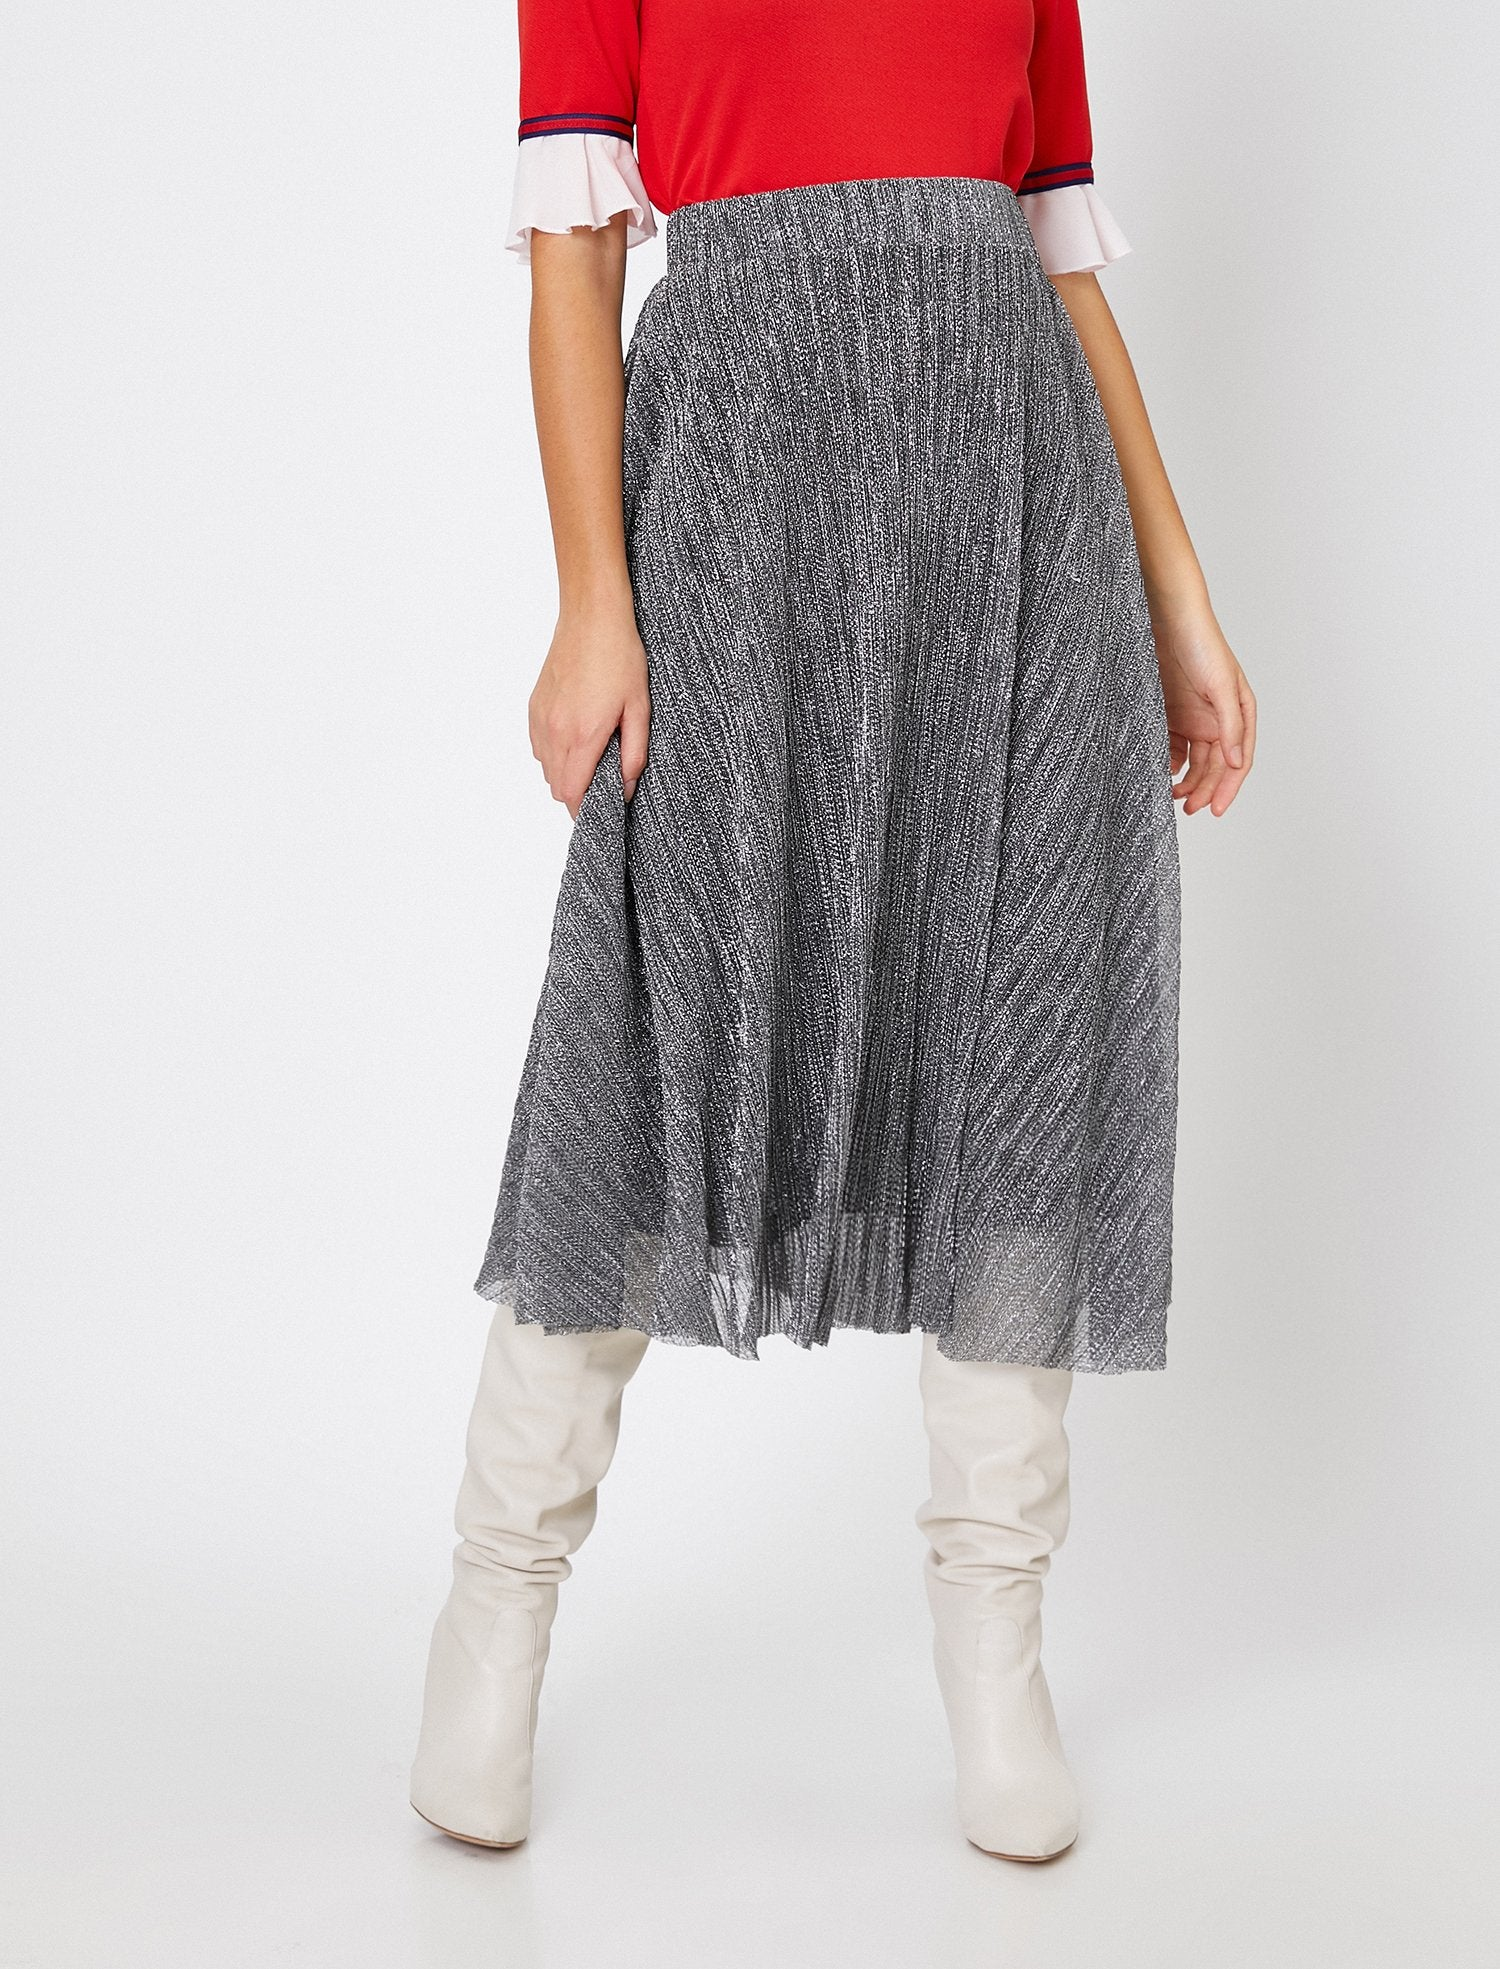 Pull-On Shimmery Skirt in Silver